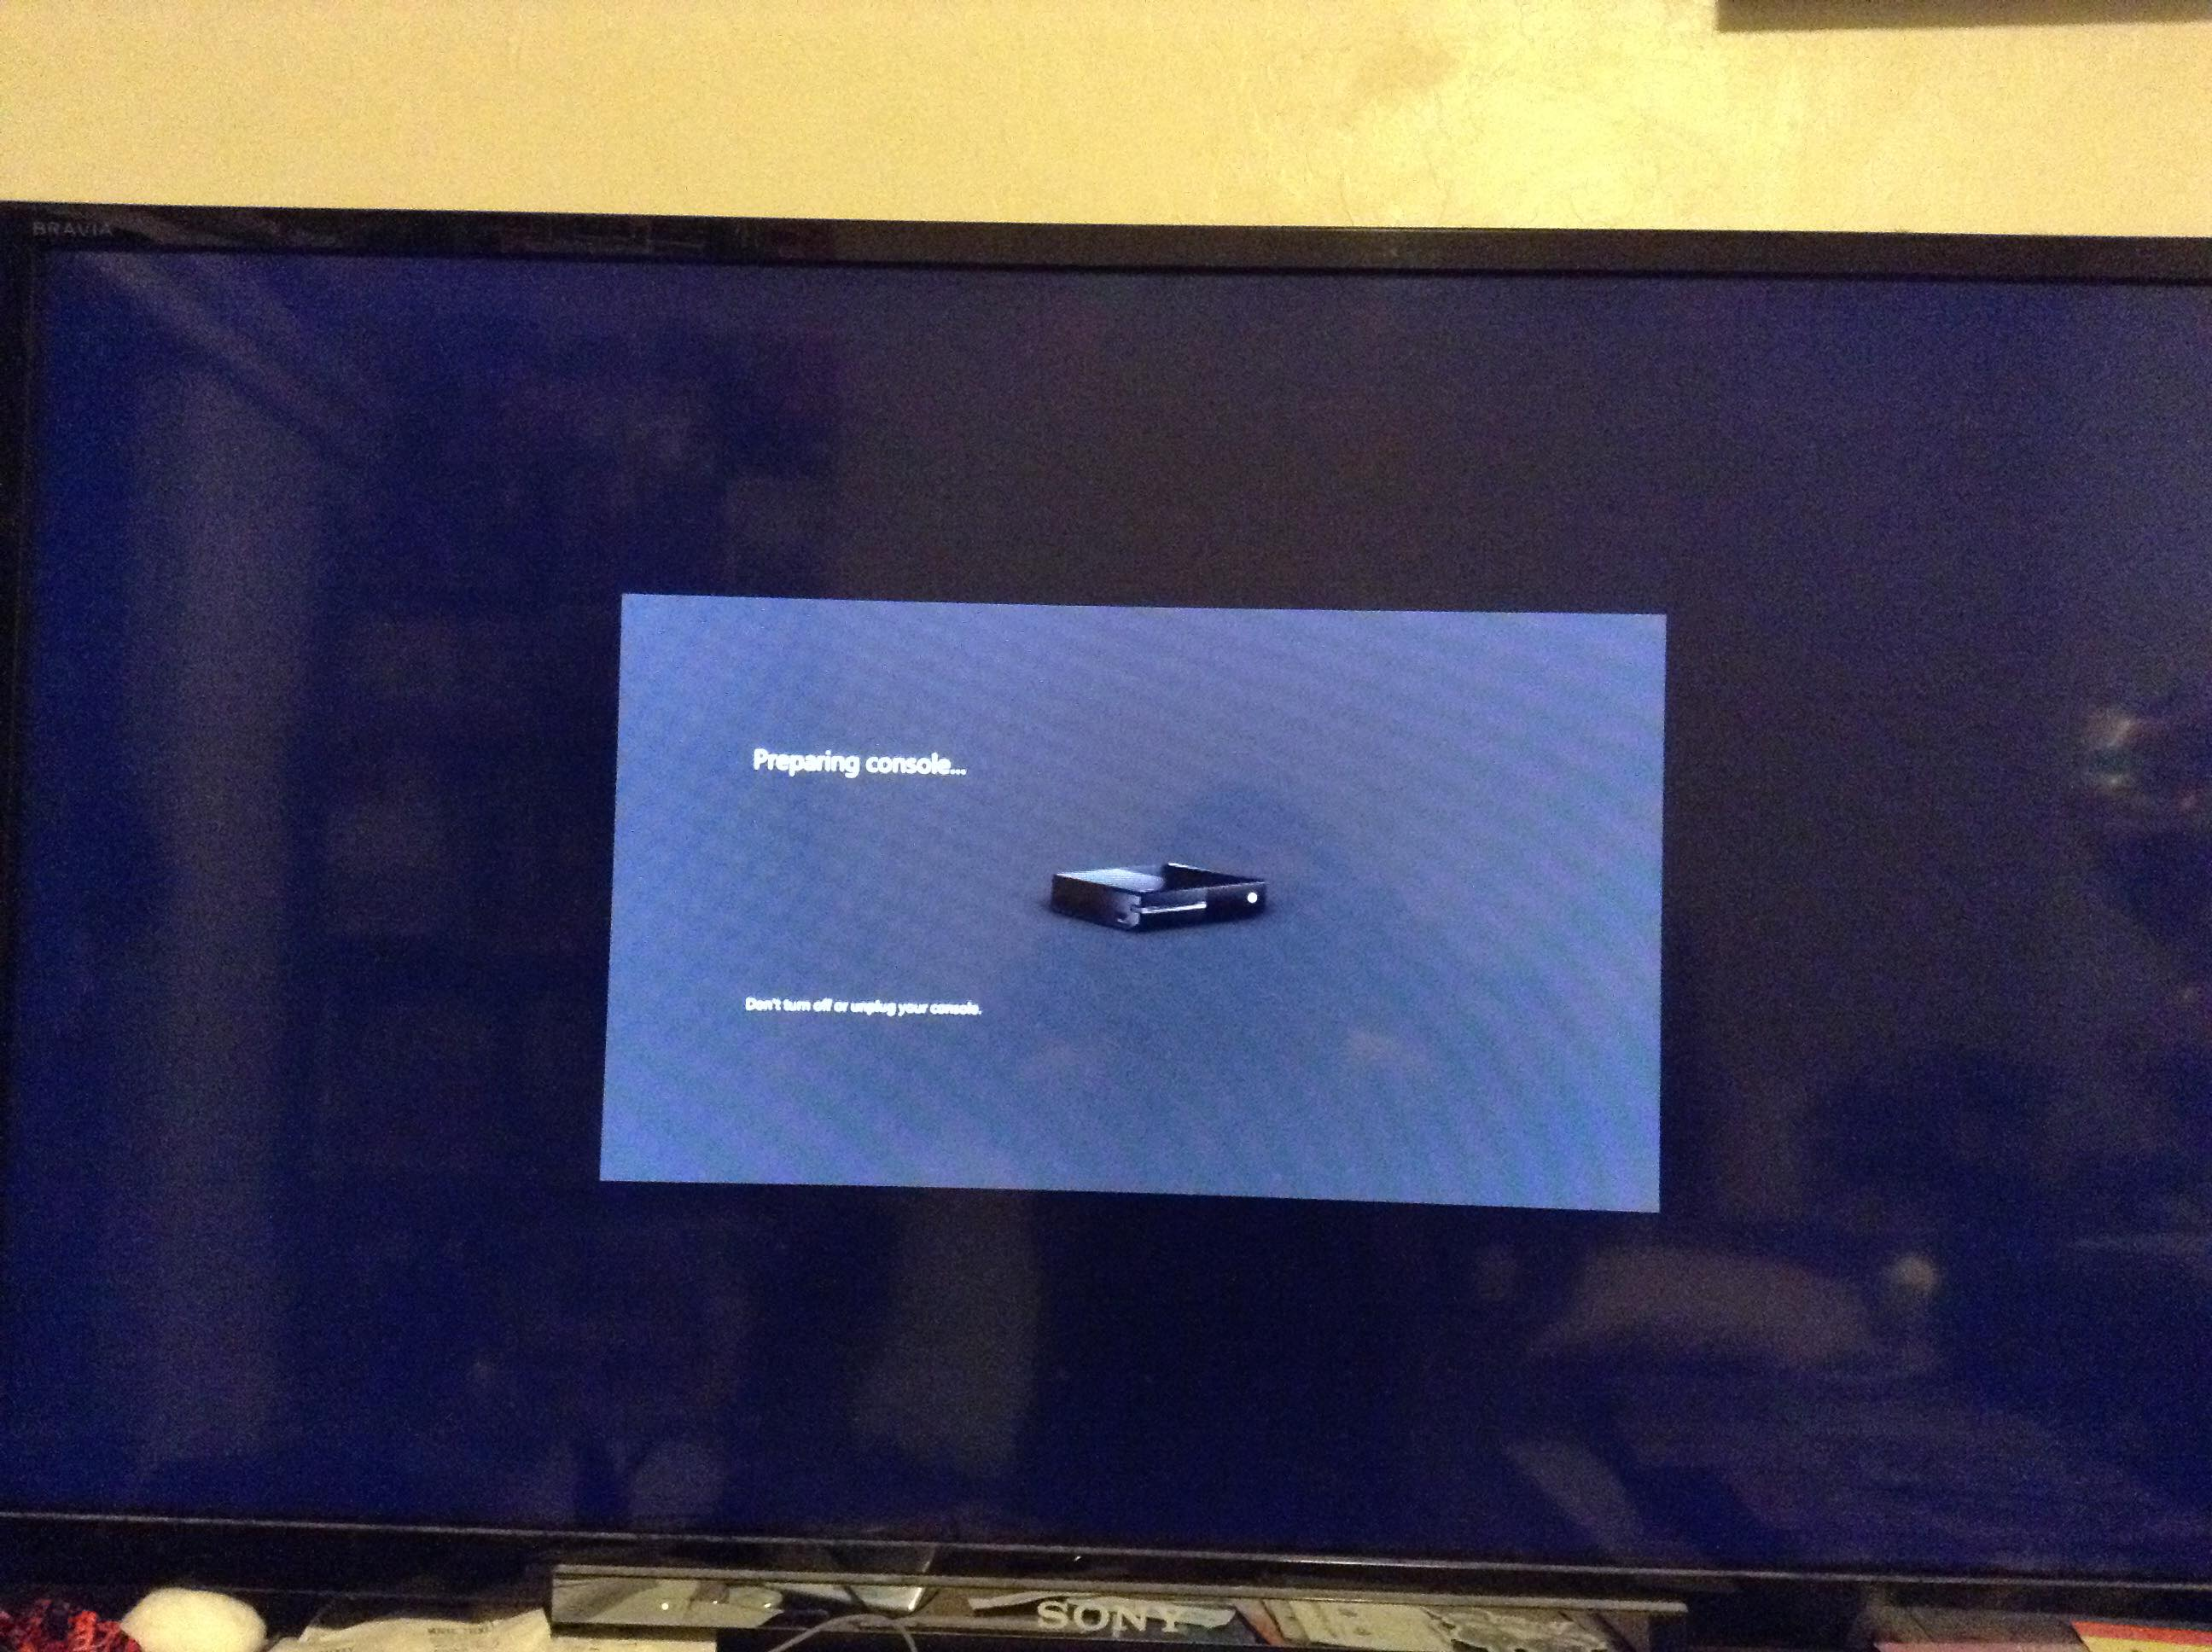 My Xbox One errors during Preparing screen at console